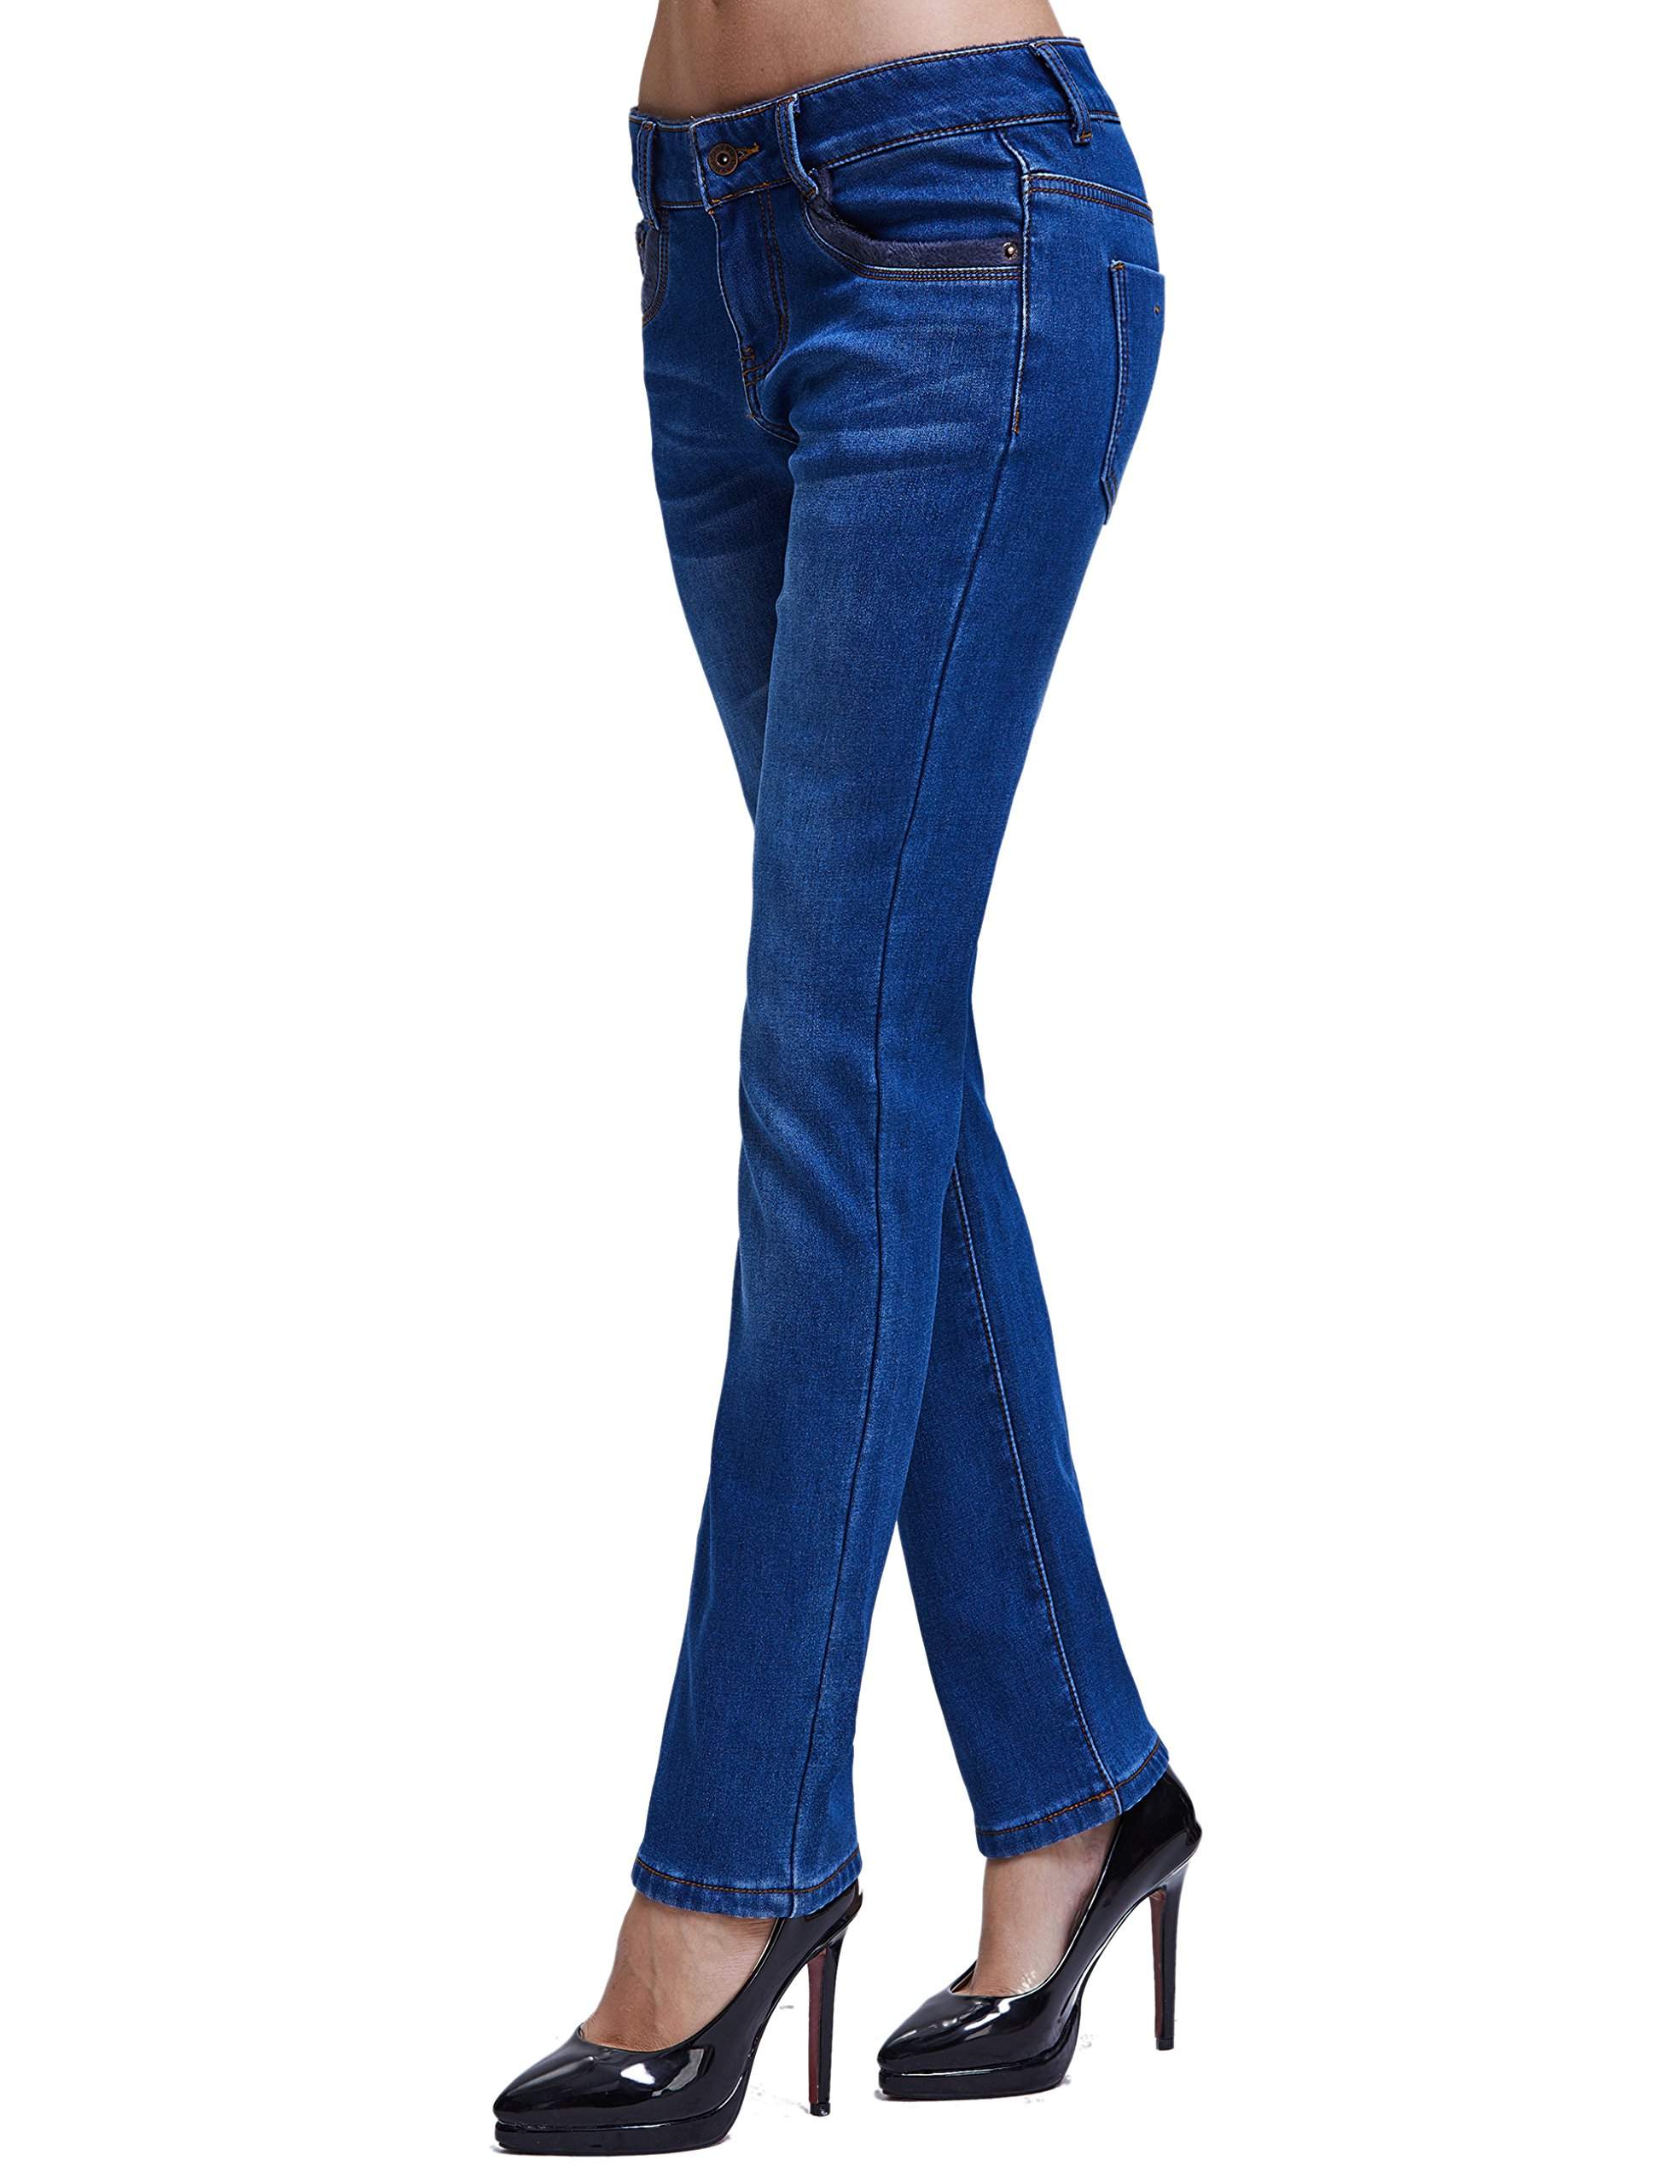 Camii Mia Women's Winter Slim Fit Thermal Jeans Pants (W28 x L30, Blue (New Size)) by Camii Mia (Image #4)